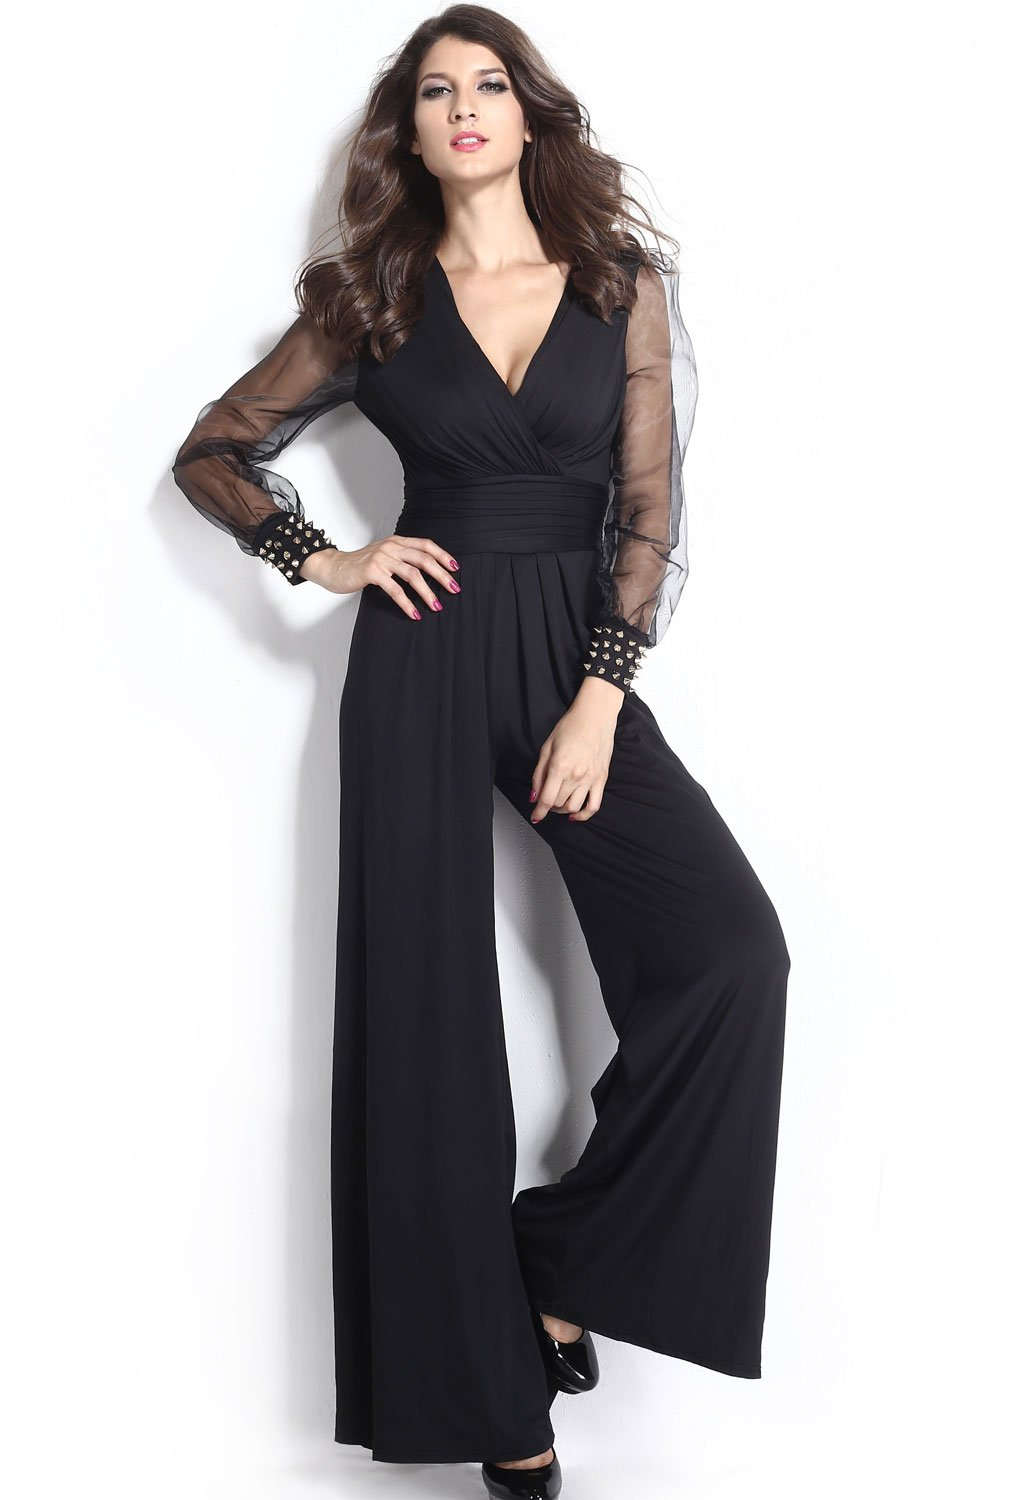 KaleaBoutique Slimming Embellished Cuffs Long Mesh Sleeves Sexy Women Ladies Jumpsuit, Black, Size XXL (US 18-20)